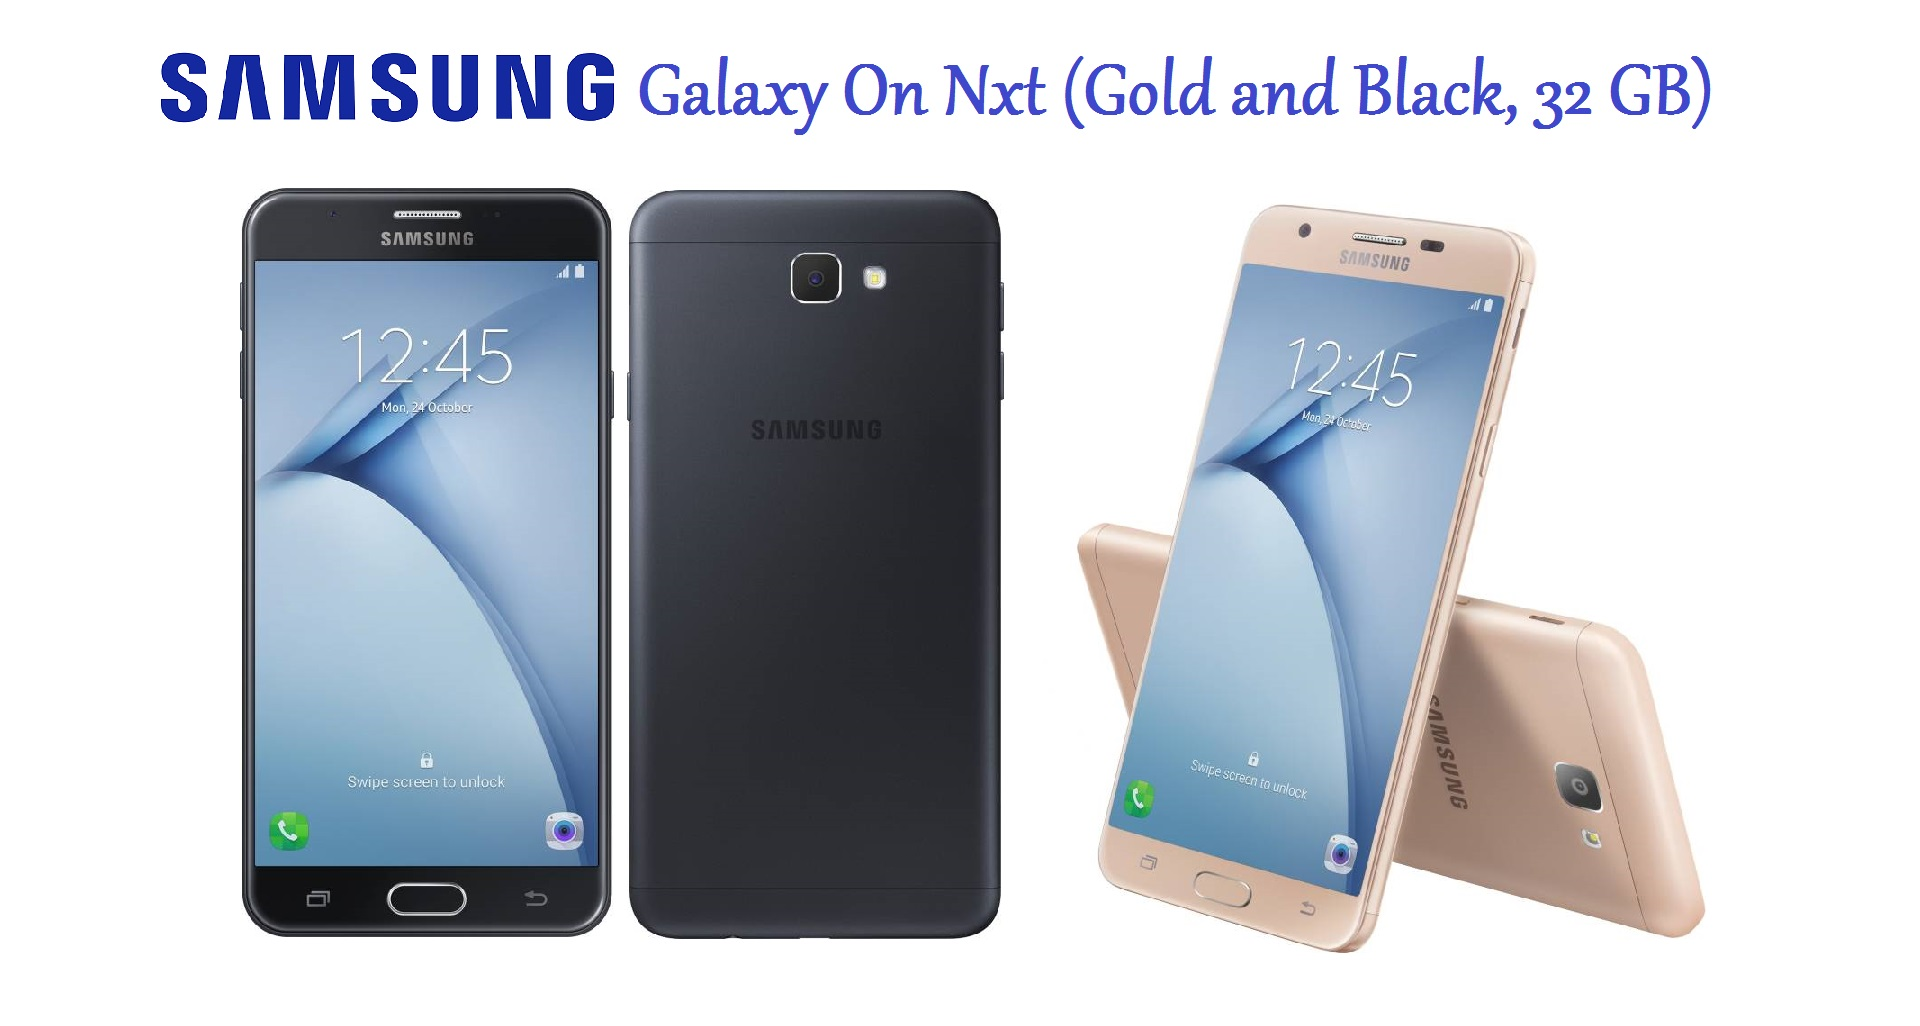 SAMSUNG Galaxy On Nxt (Gold and Black 32GB)